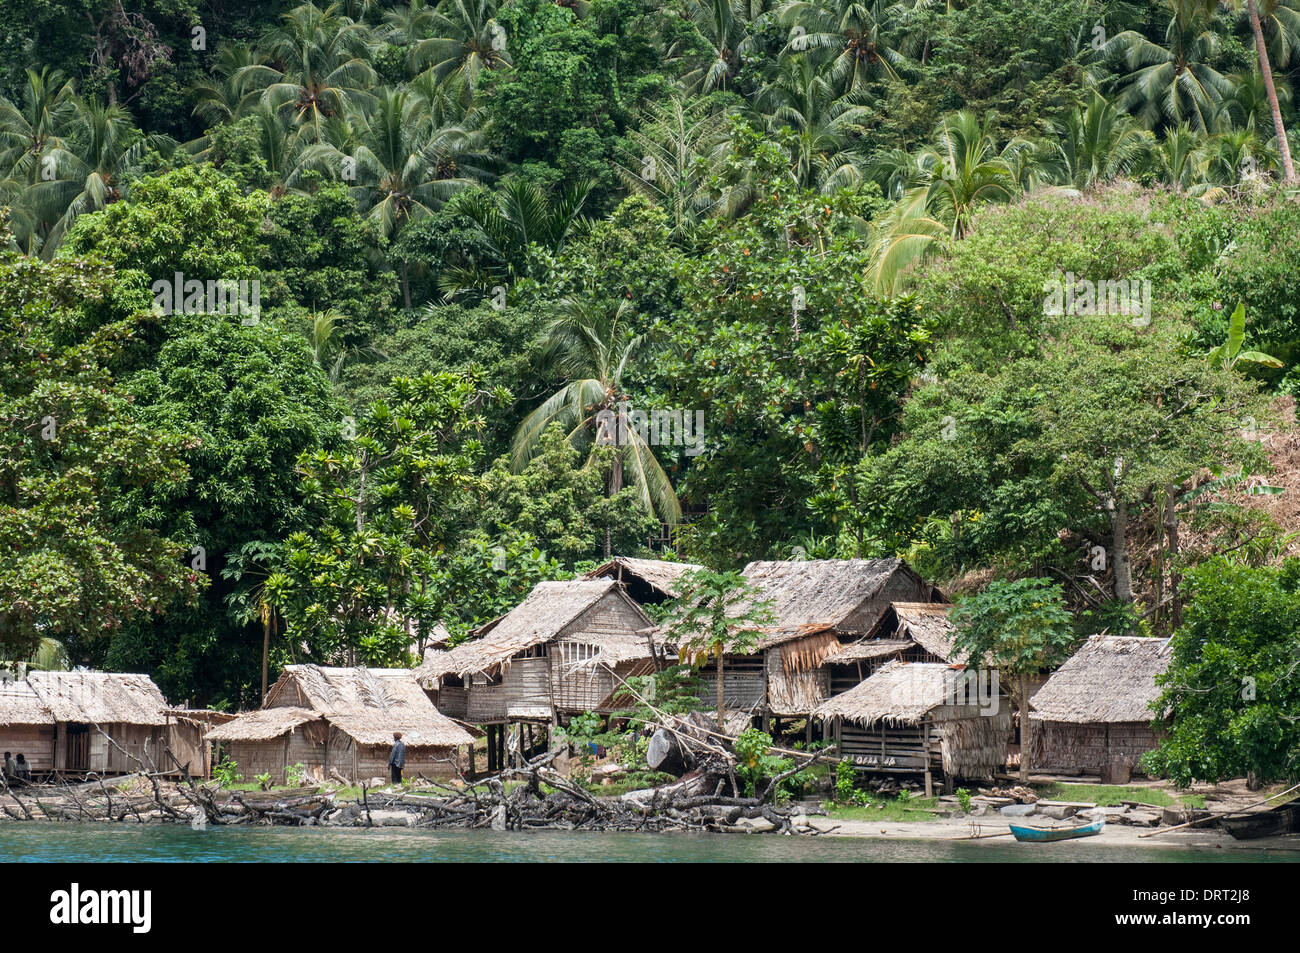 A melanesian village on anuta island makira province solomon stock a melanesian village on anuta island makira province solomon islands thecheapjerseys Image collections